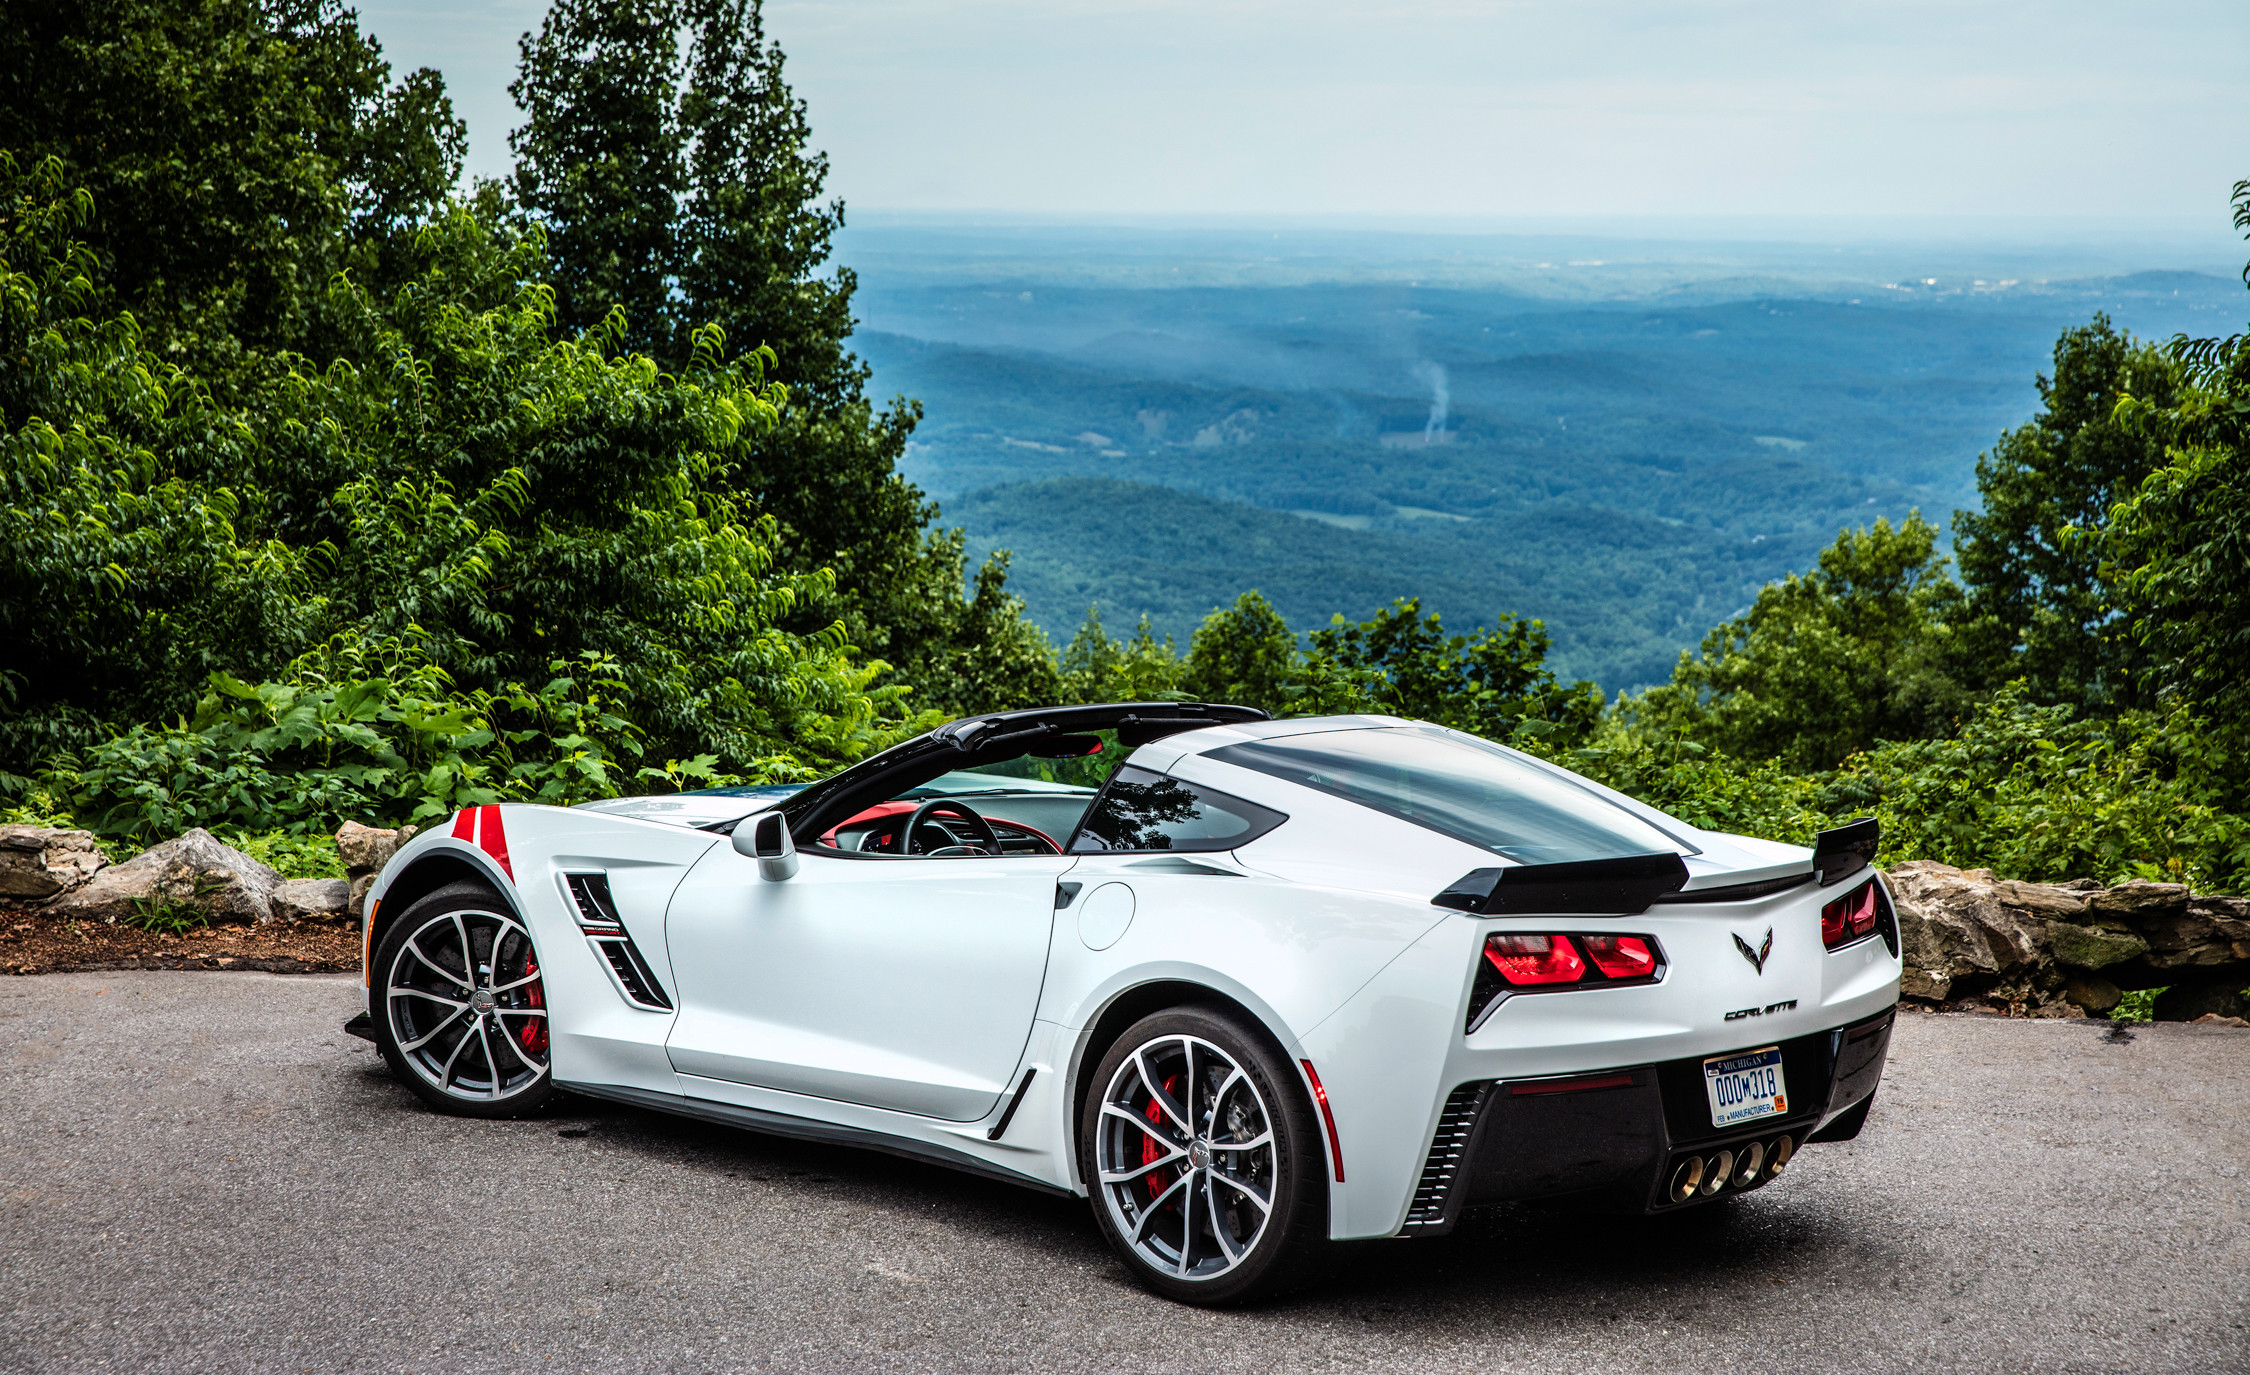 2250x1375 Chevrolet Corvette C7 Sports Car